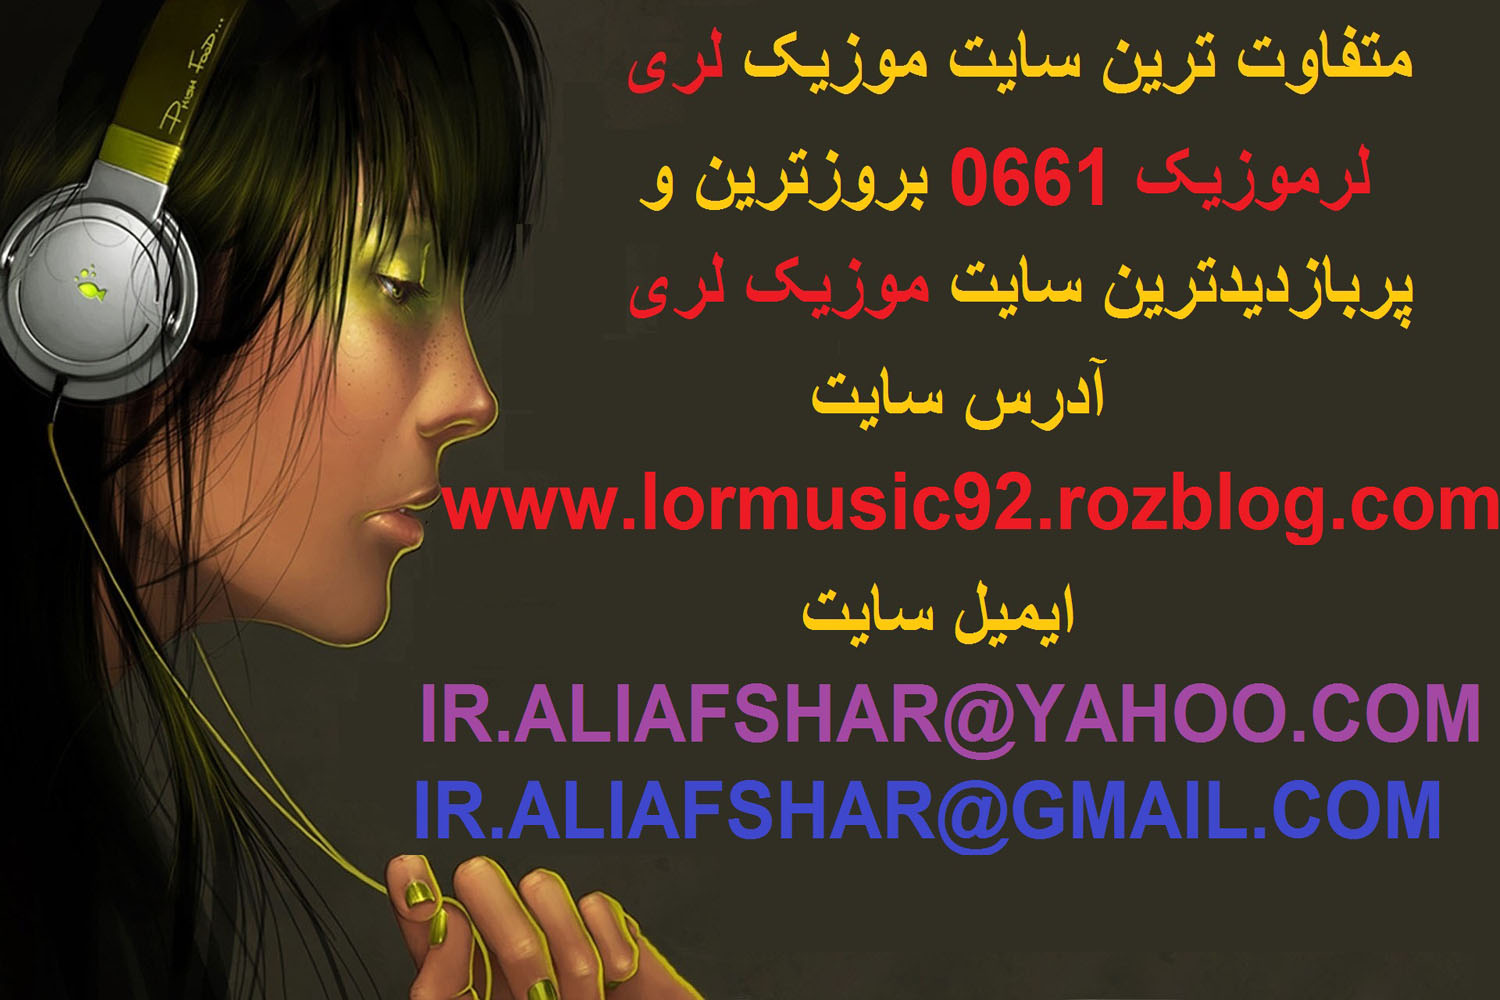 http://rozup.ir/up/lormusic92/Pictures/ALI%20AFSHAR.jpg